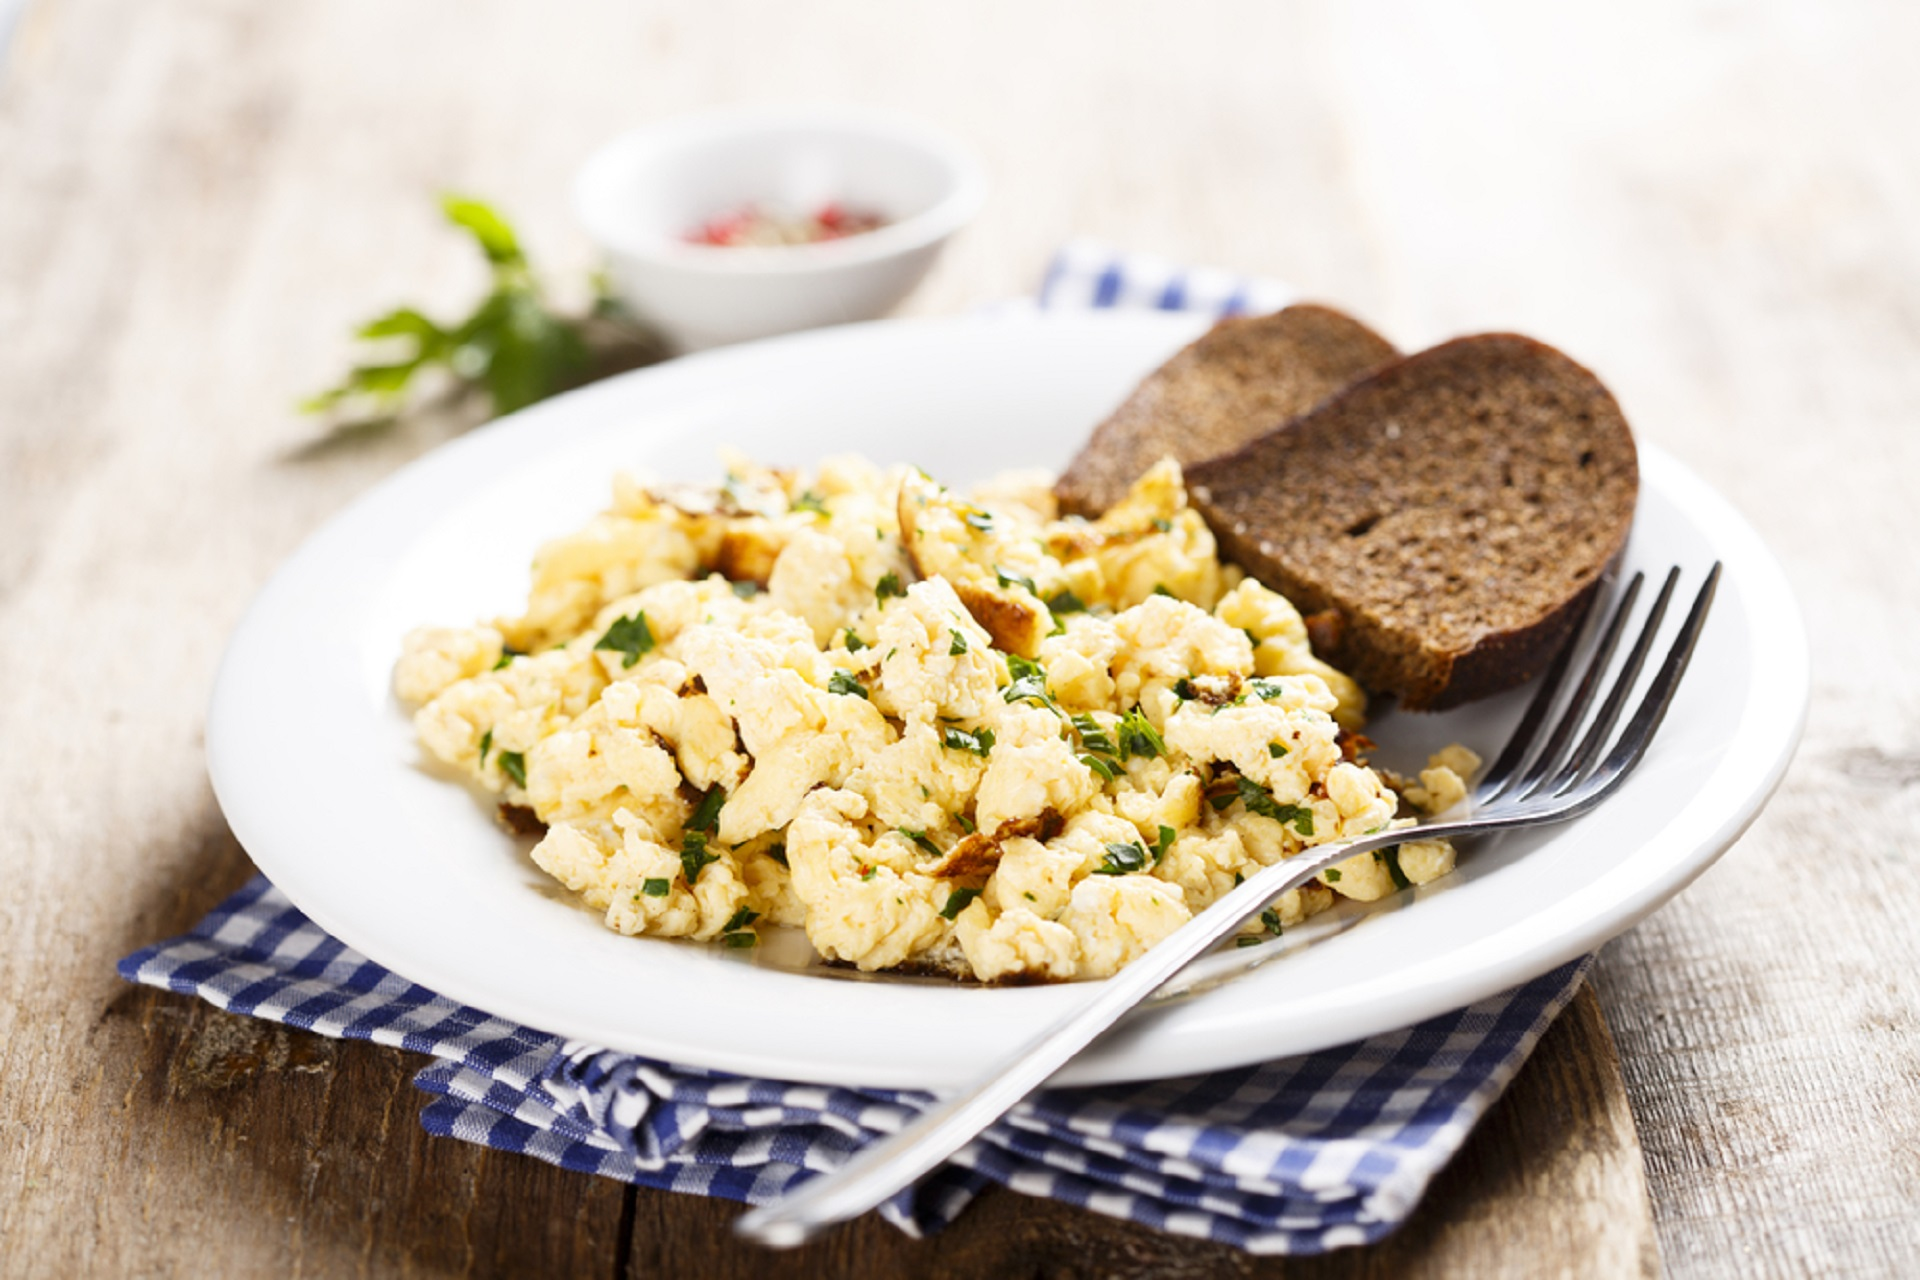 Spicy scrambled eggs.